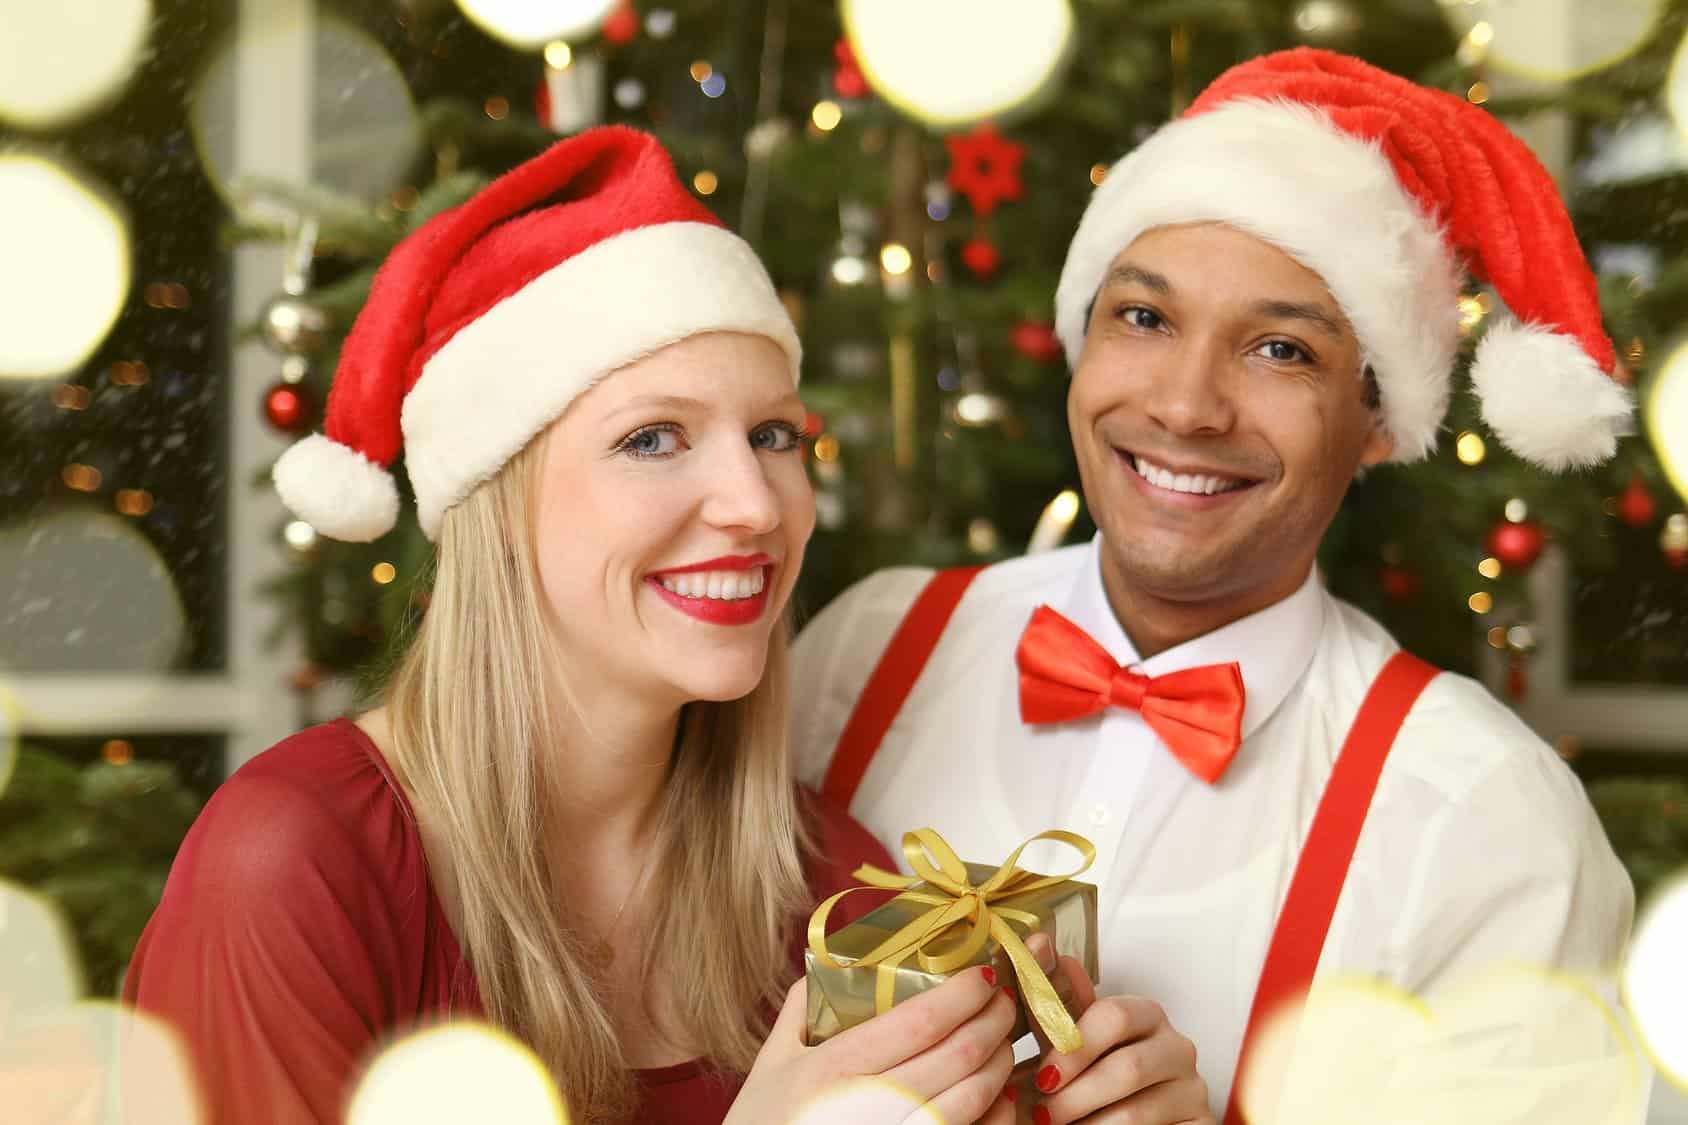 Find More Holiday Happiness By Increasing Your Emotional Intelligence